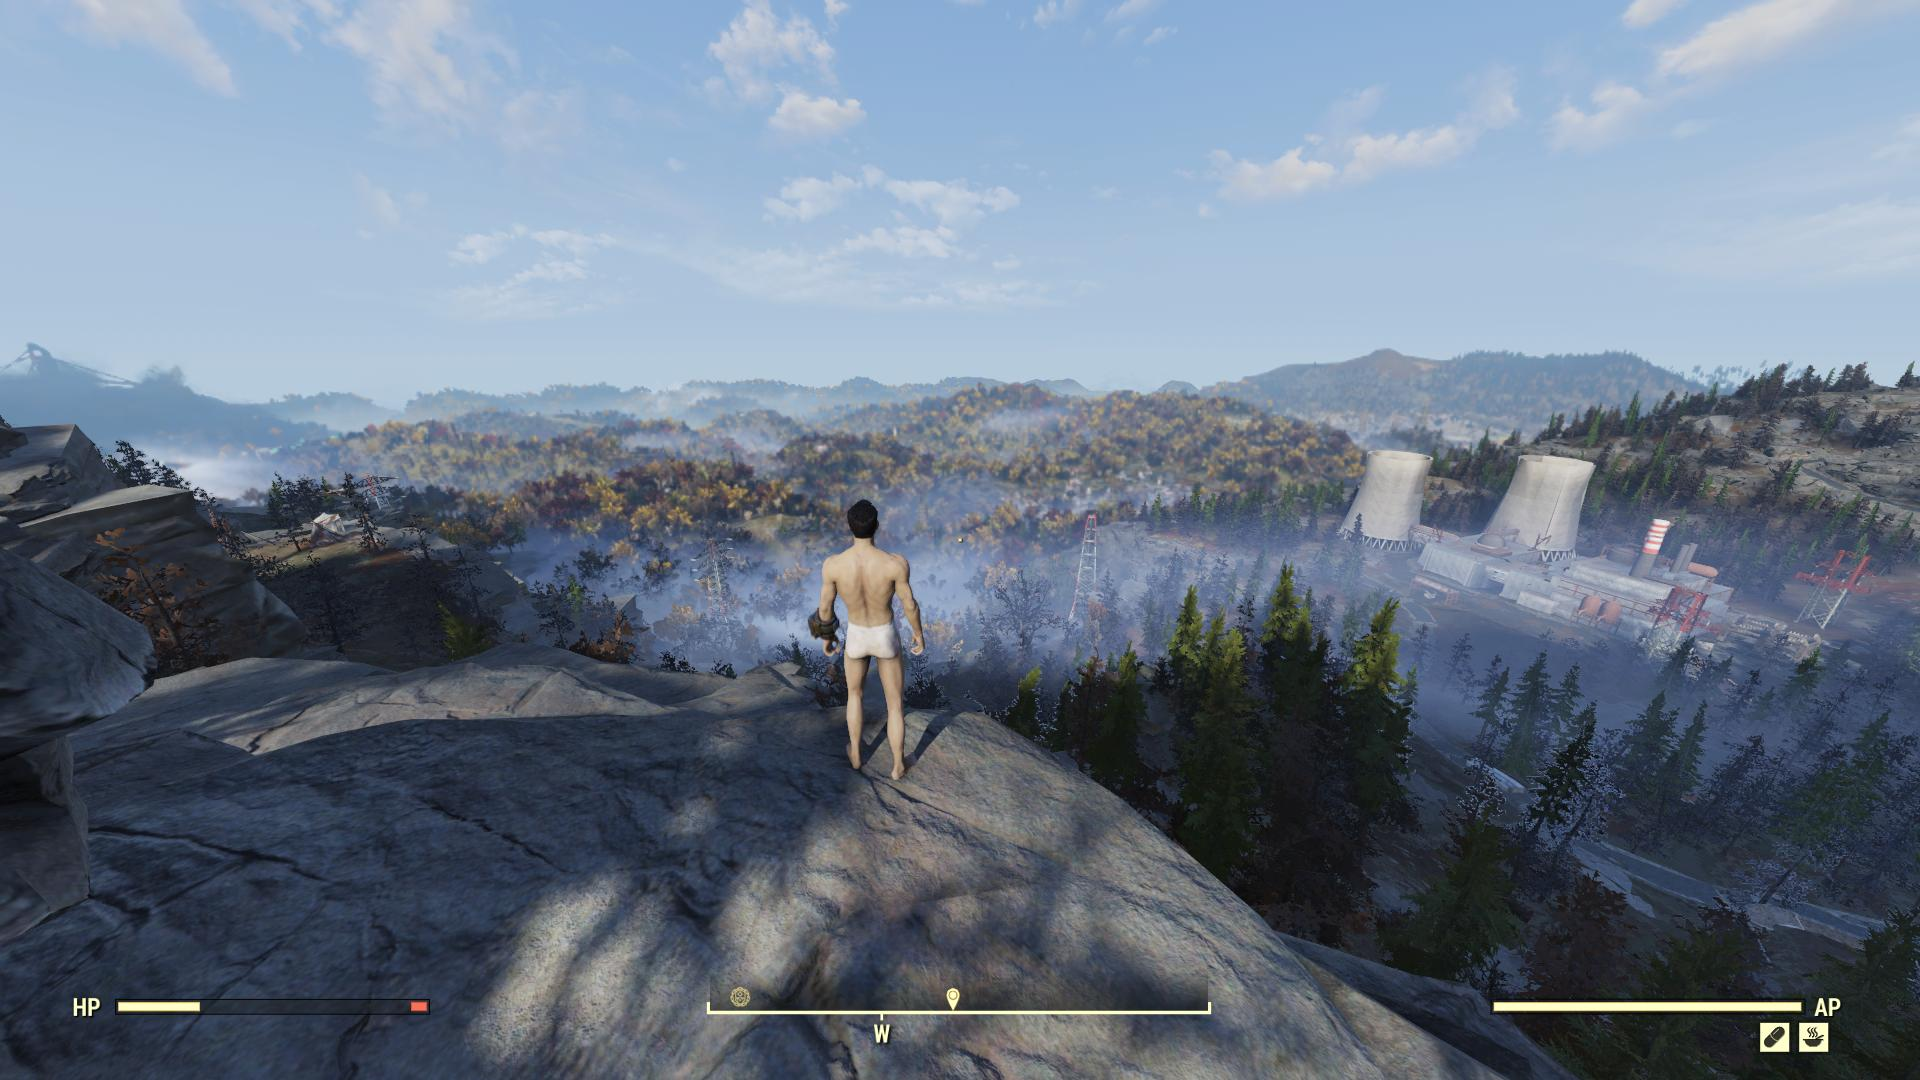 I crossed Fallout 76 with no clothes and a hangover